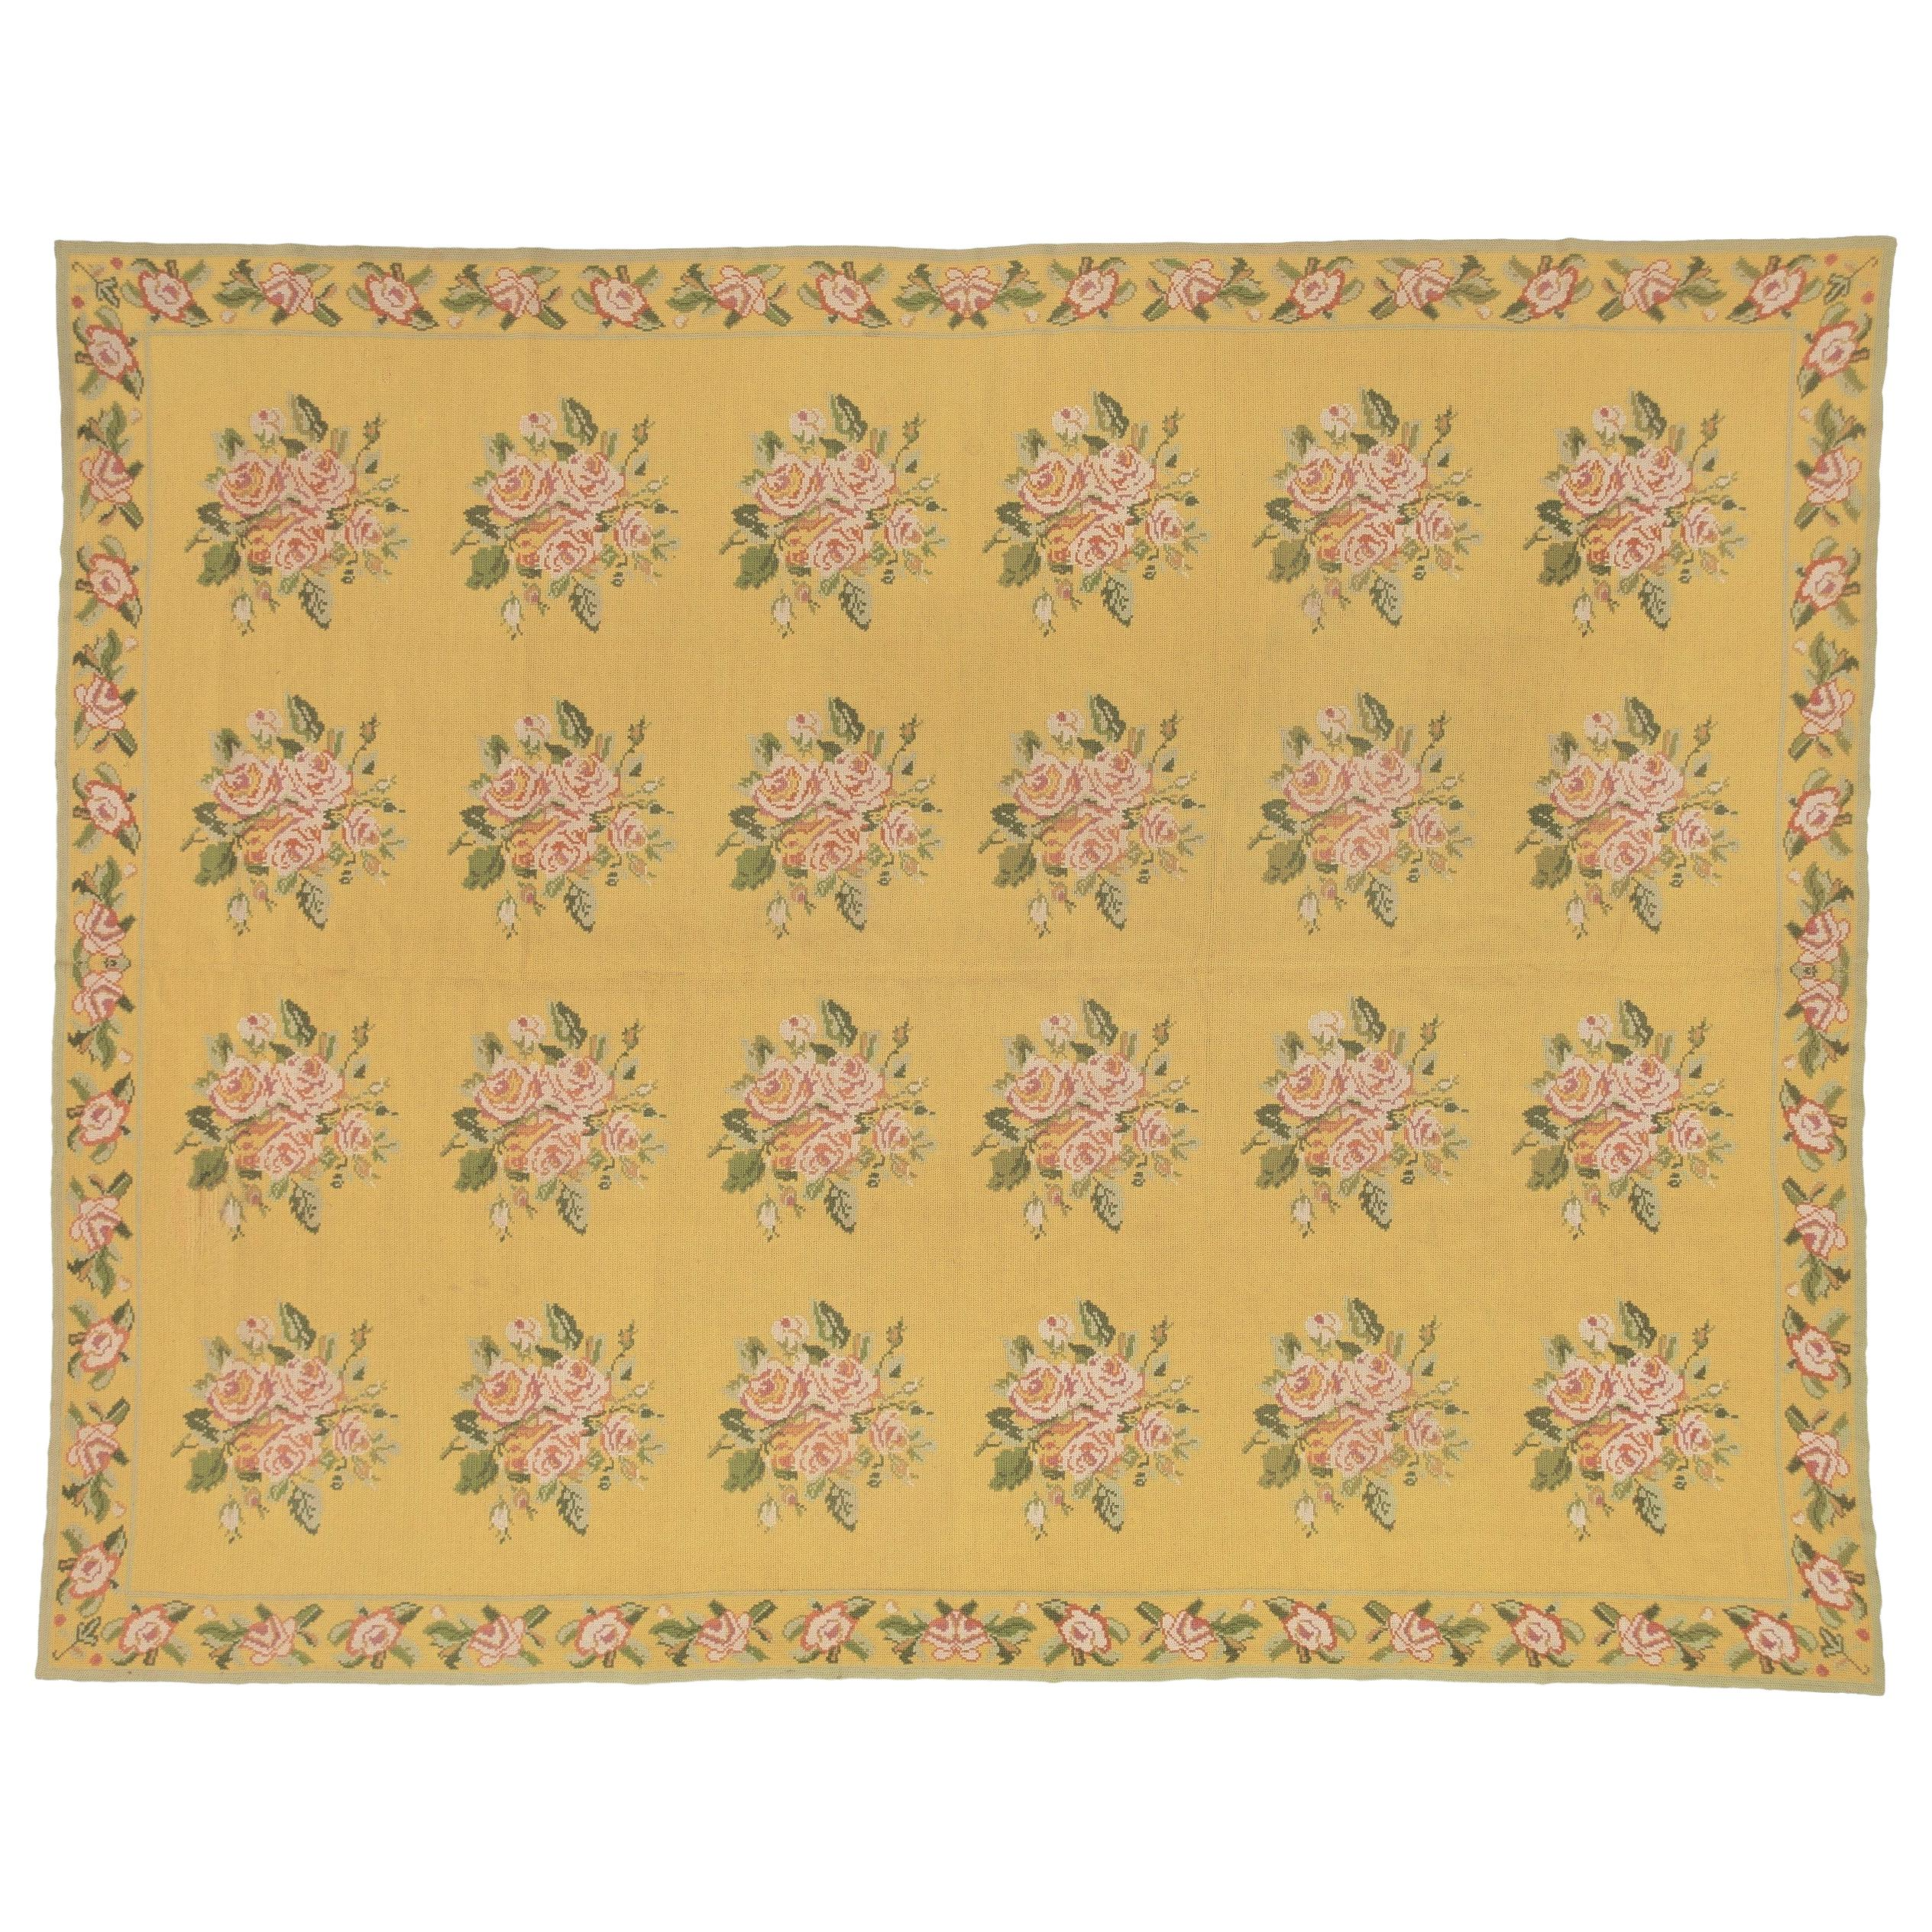 20th Century Yellow Pink Green Flowers Arraiolos Rug from Portugal, circa 1900s